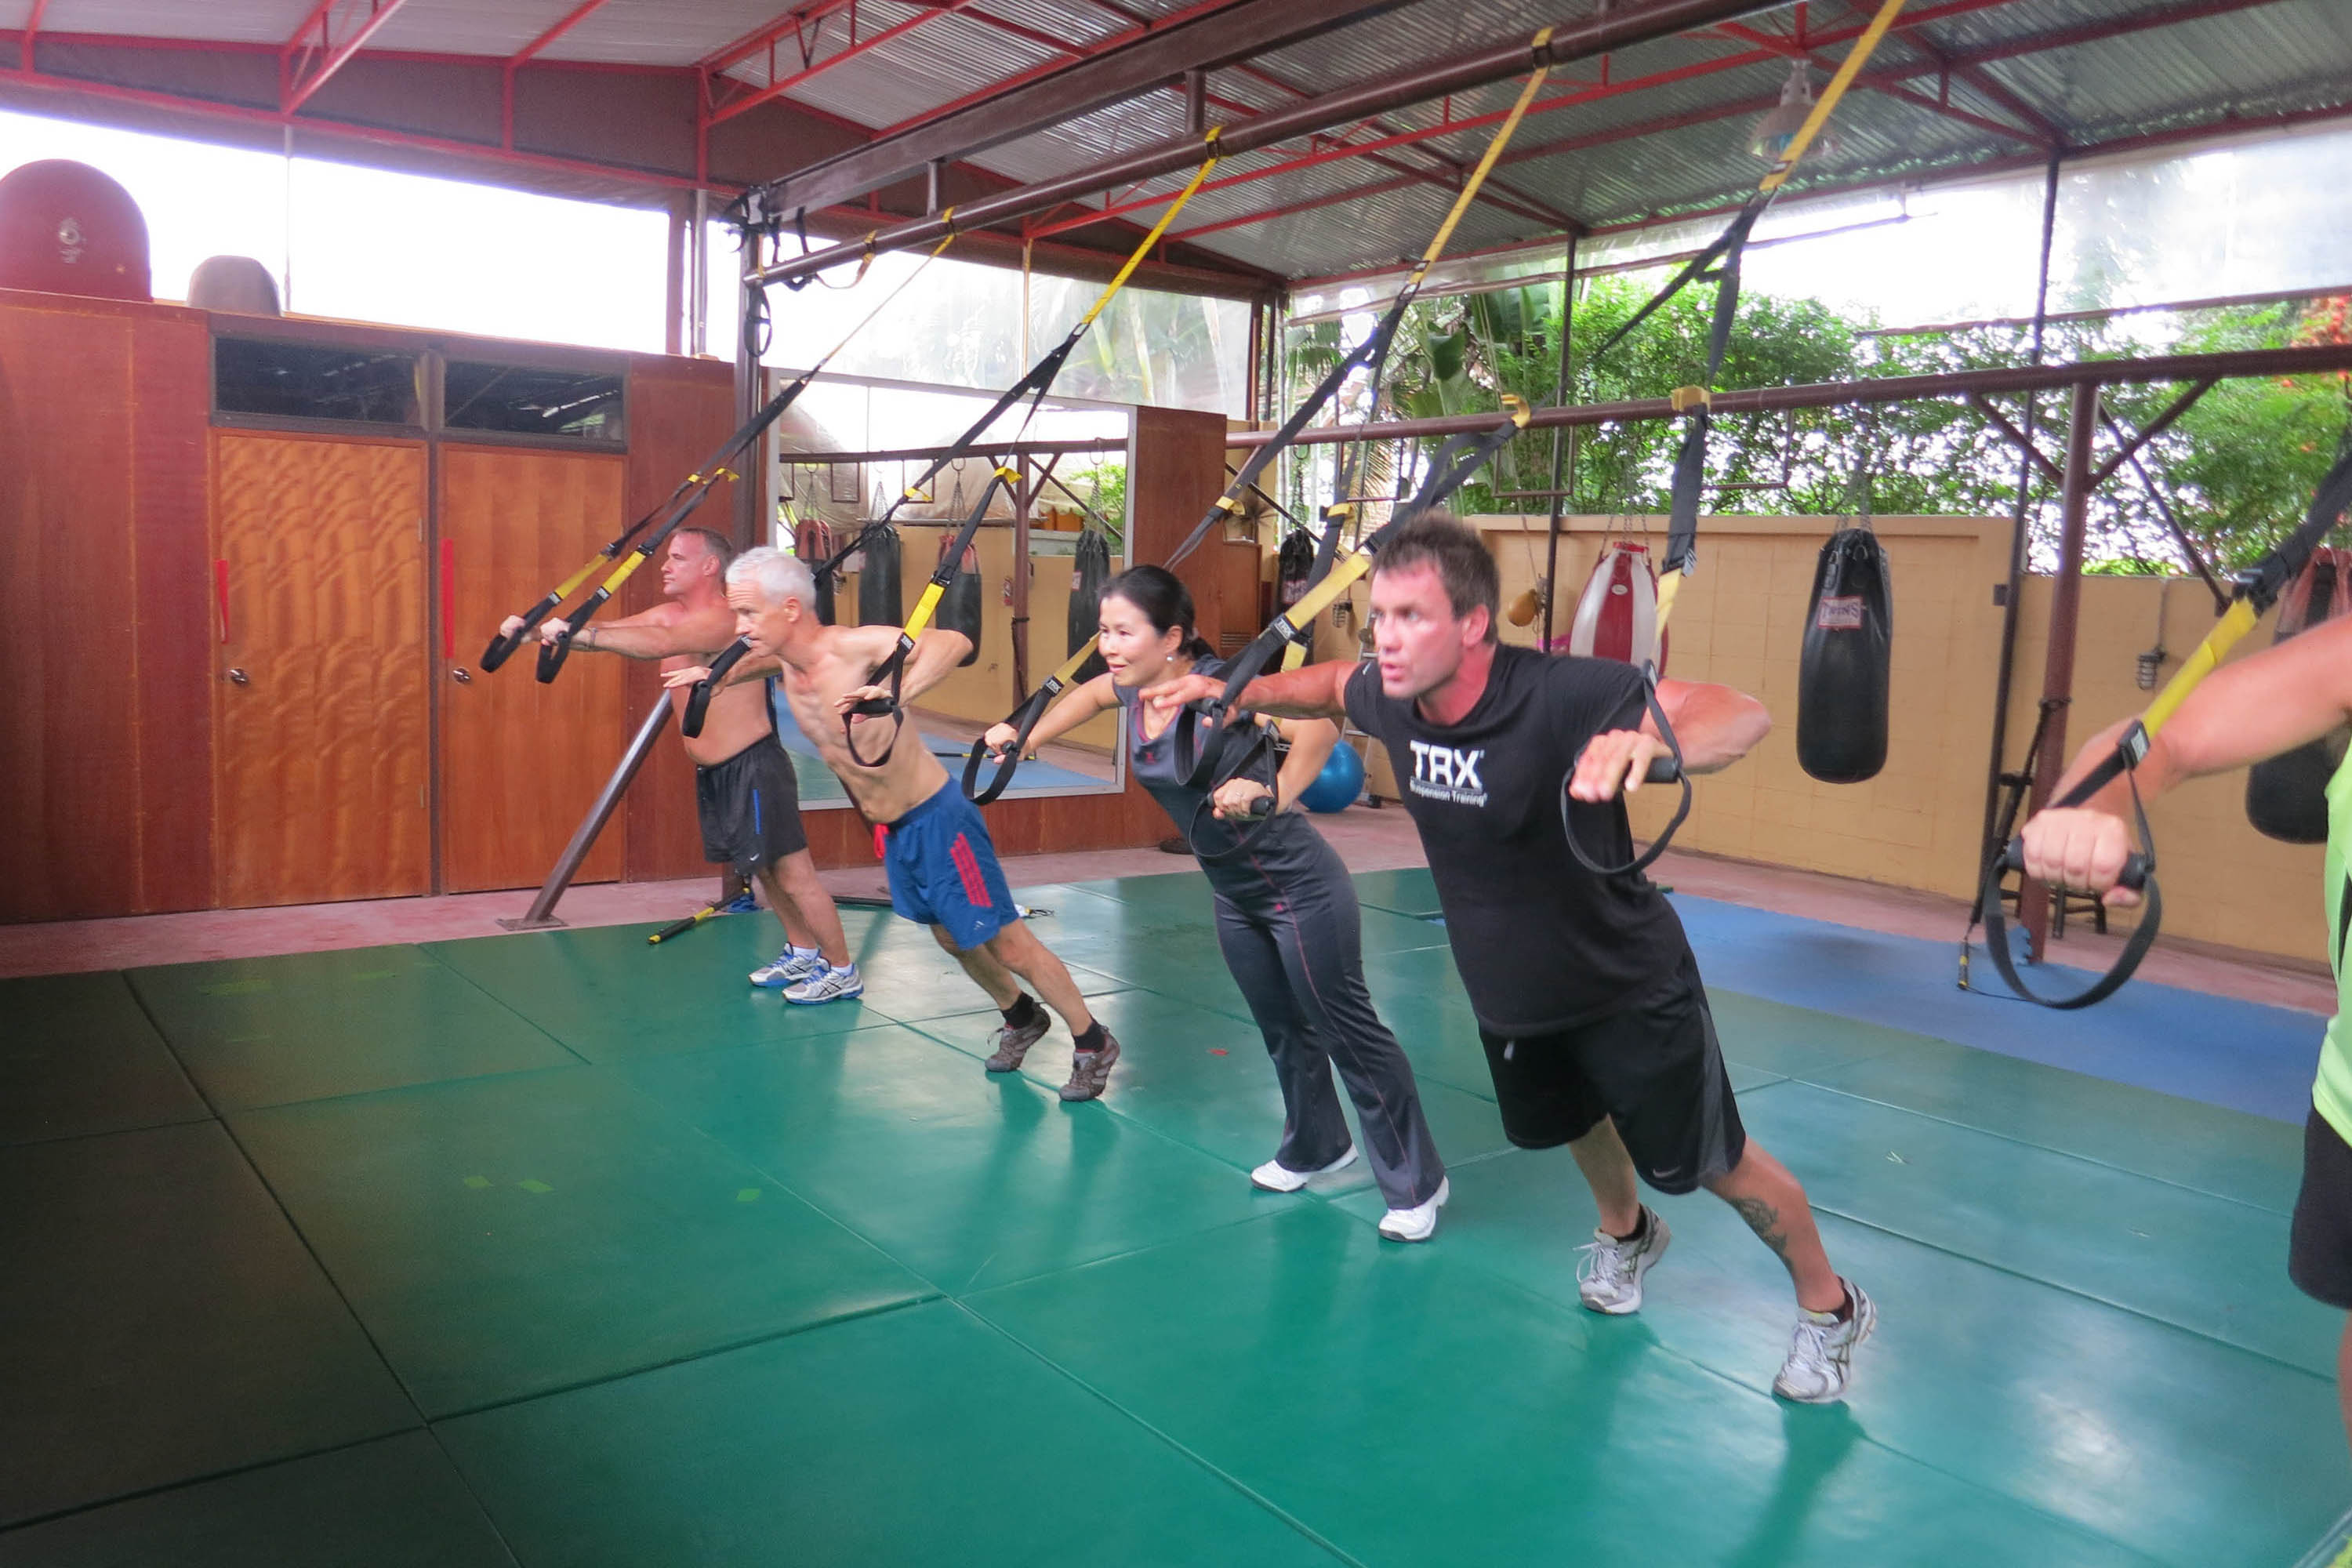 TRX fitness at Phuket Cleanse Detox Fitness in Thailand